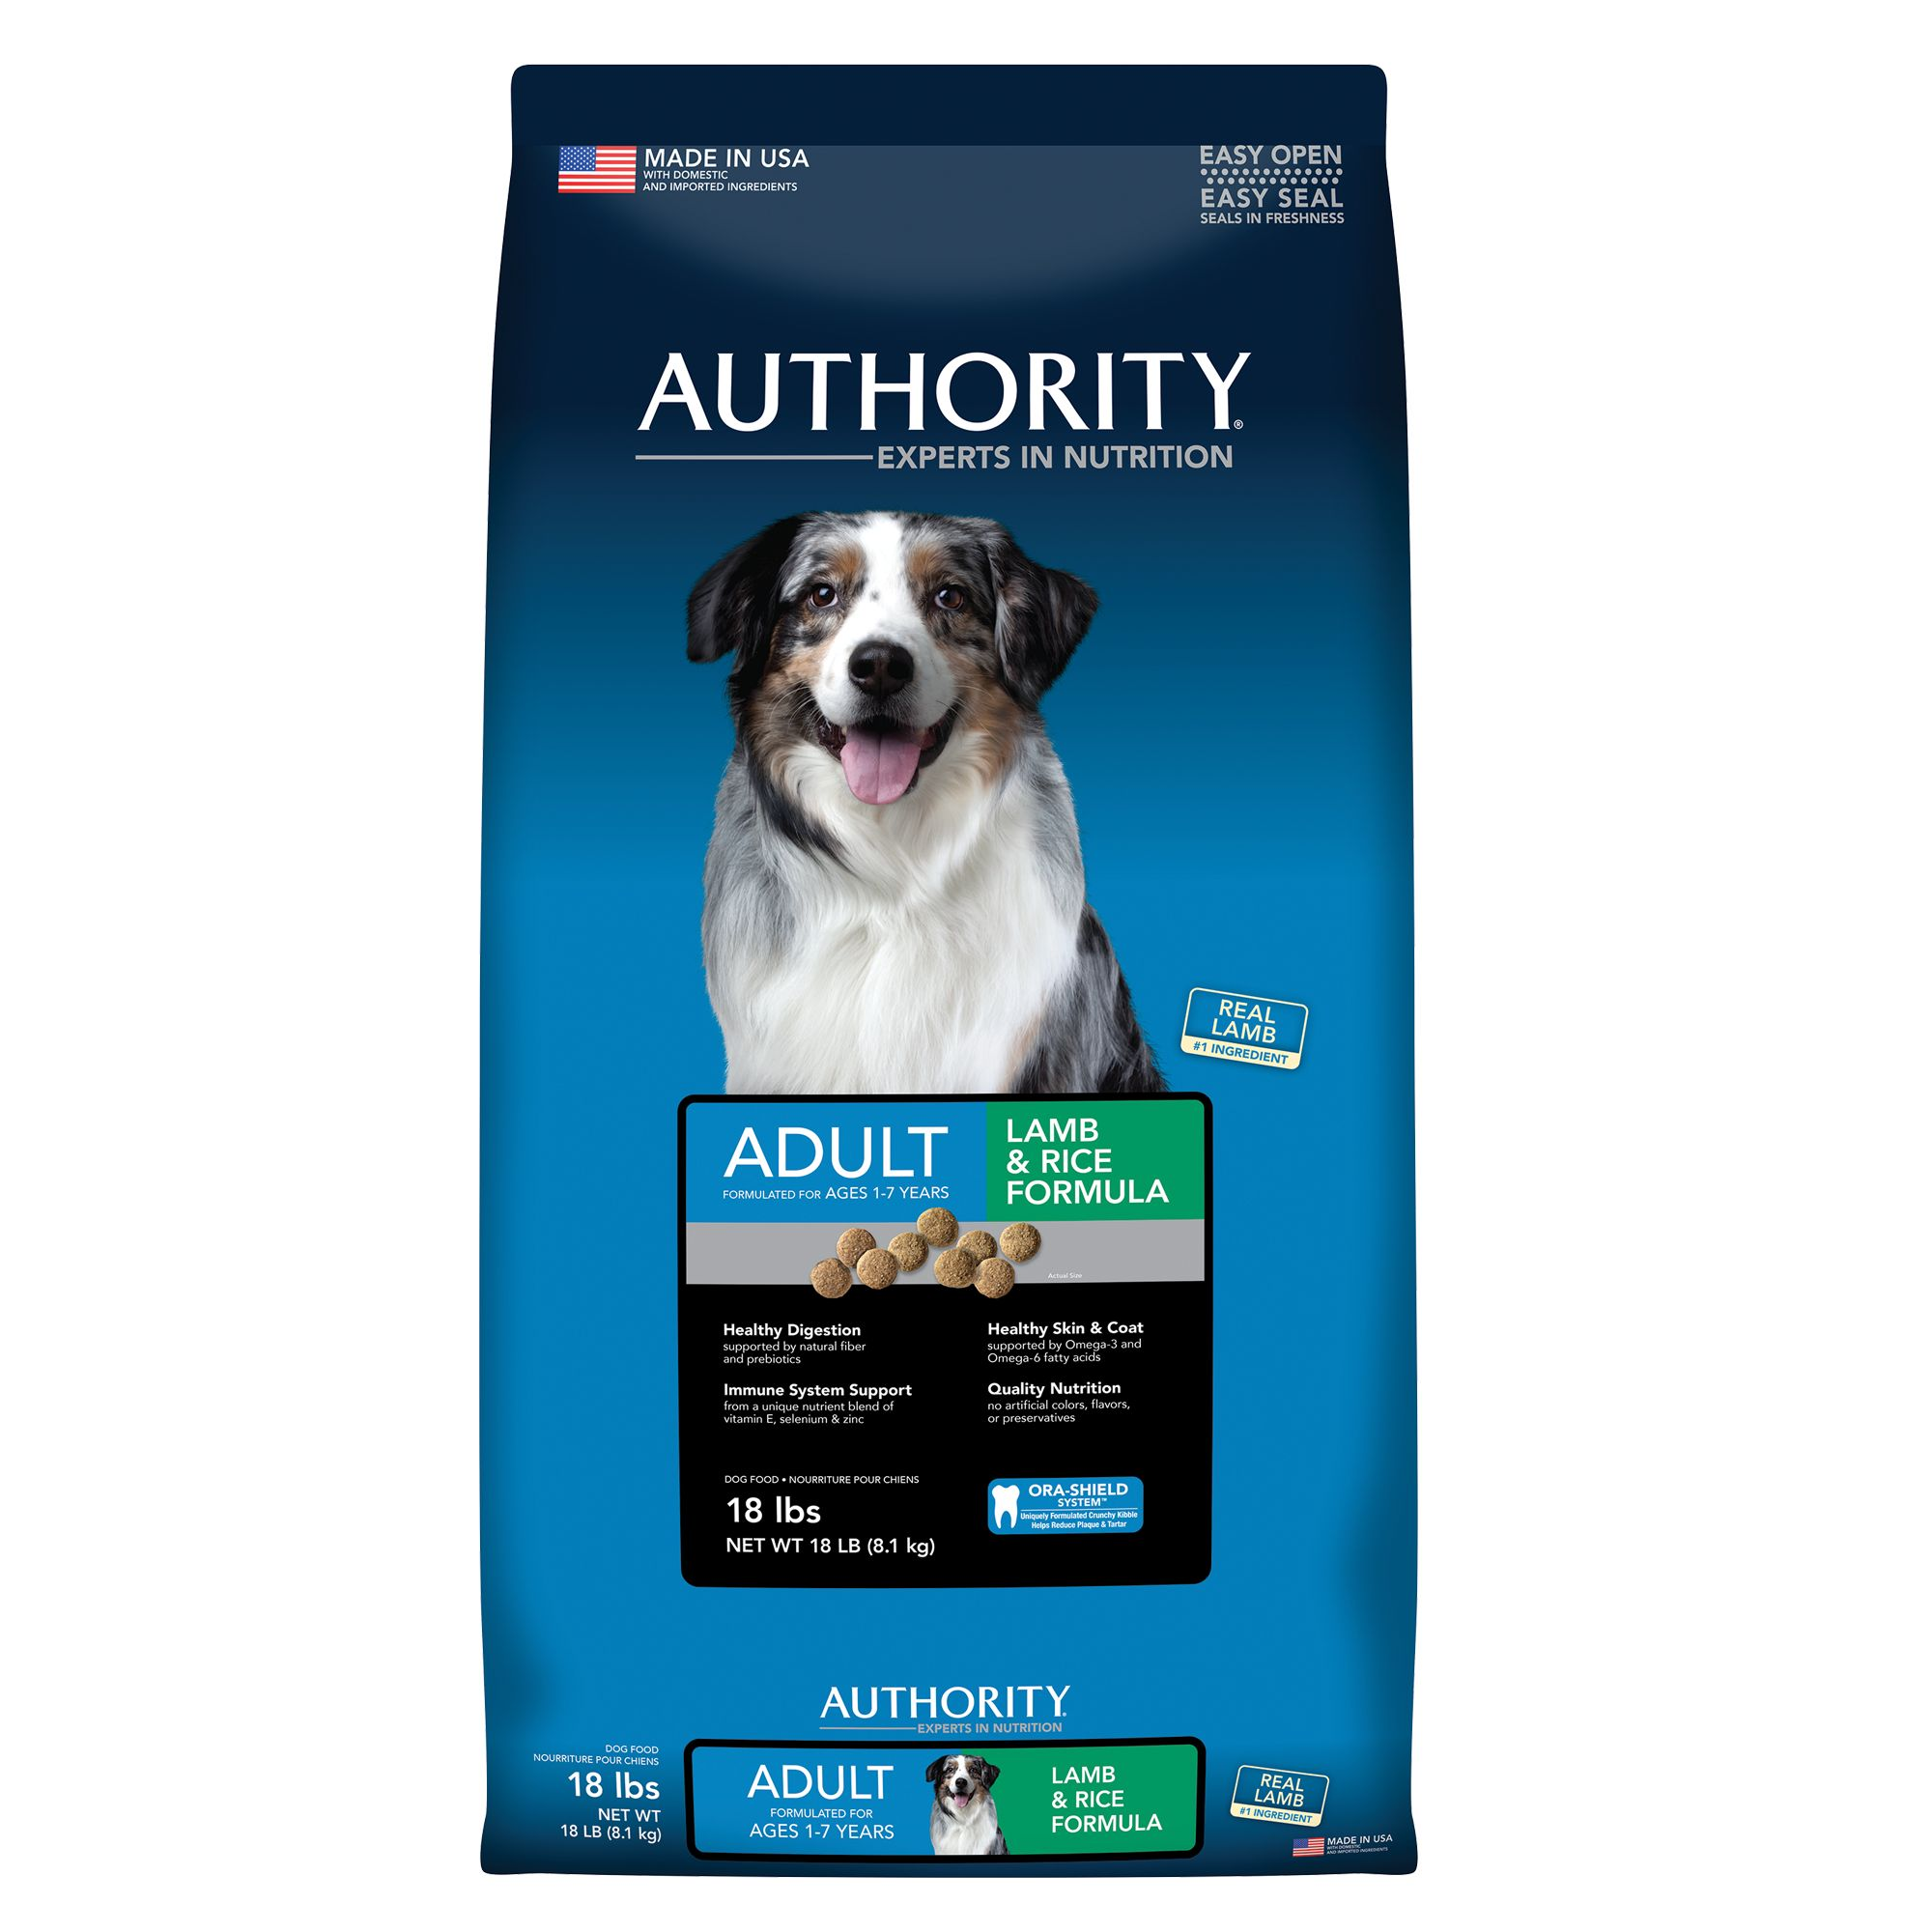 Authority Adult Dog Food - Lamb and Rice size: 18 Lb, Kibble 5221188